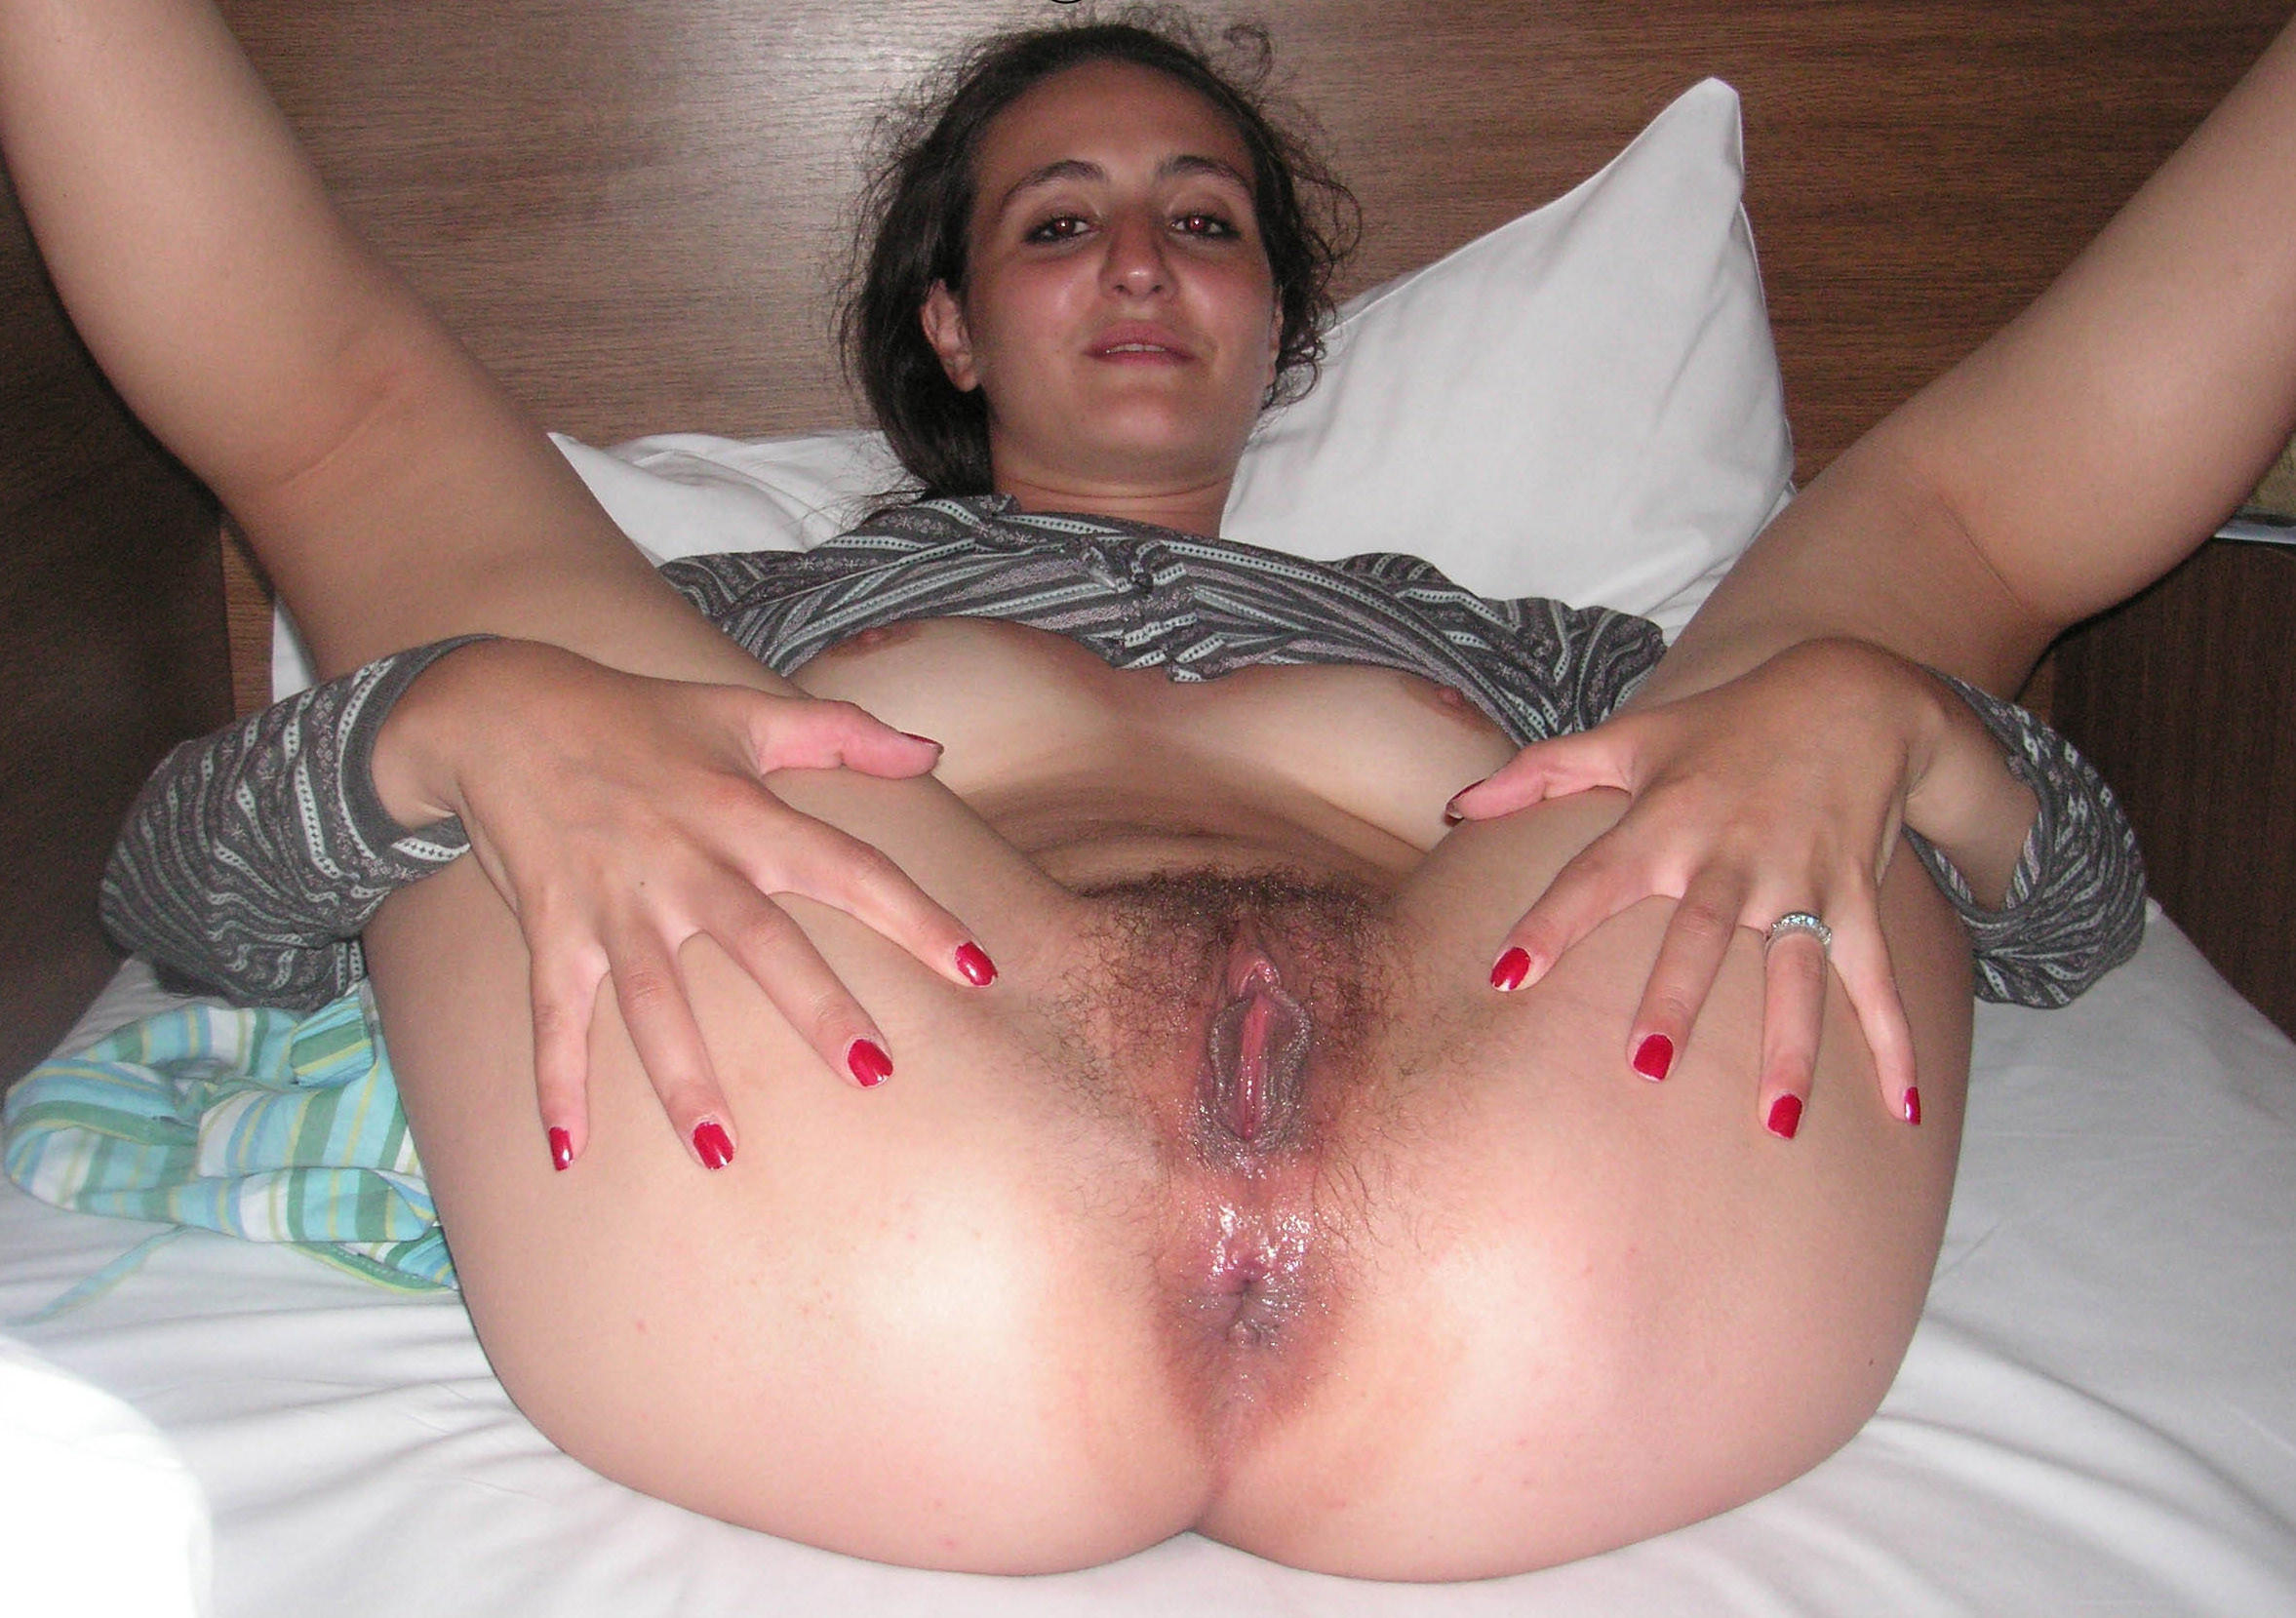 amateur pussy spread pics naked pictures - lennatin